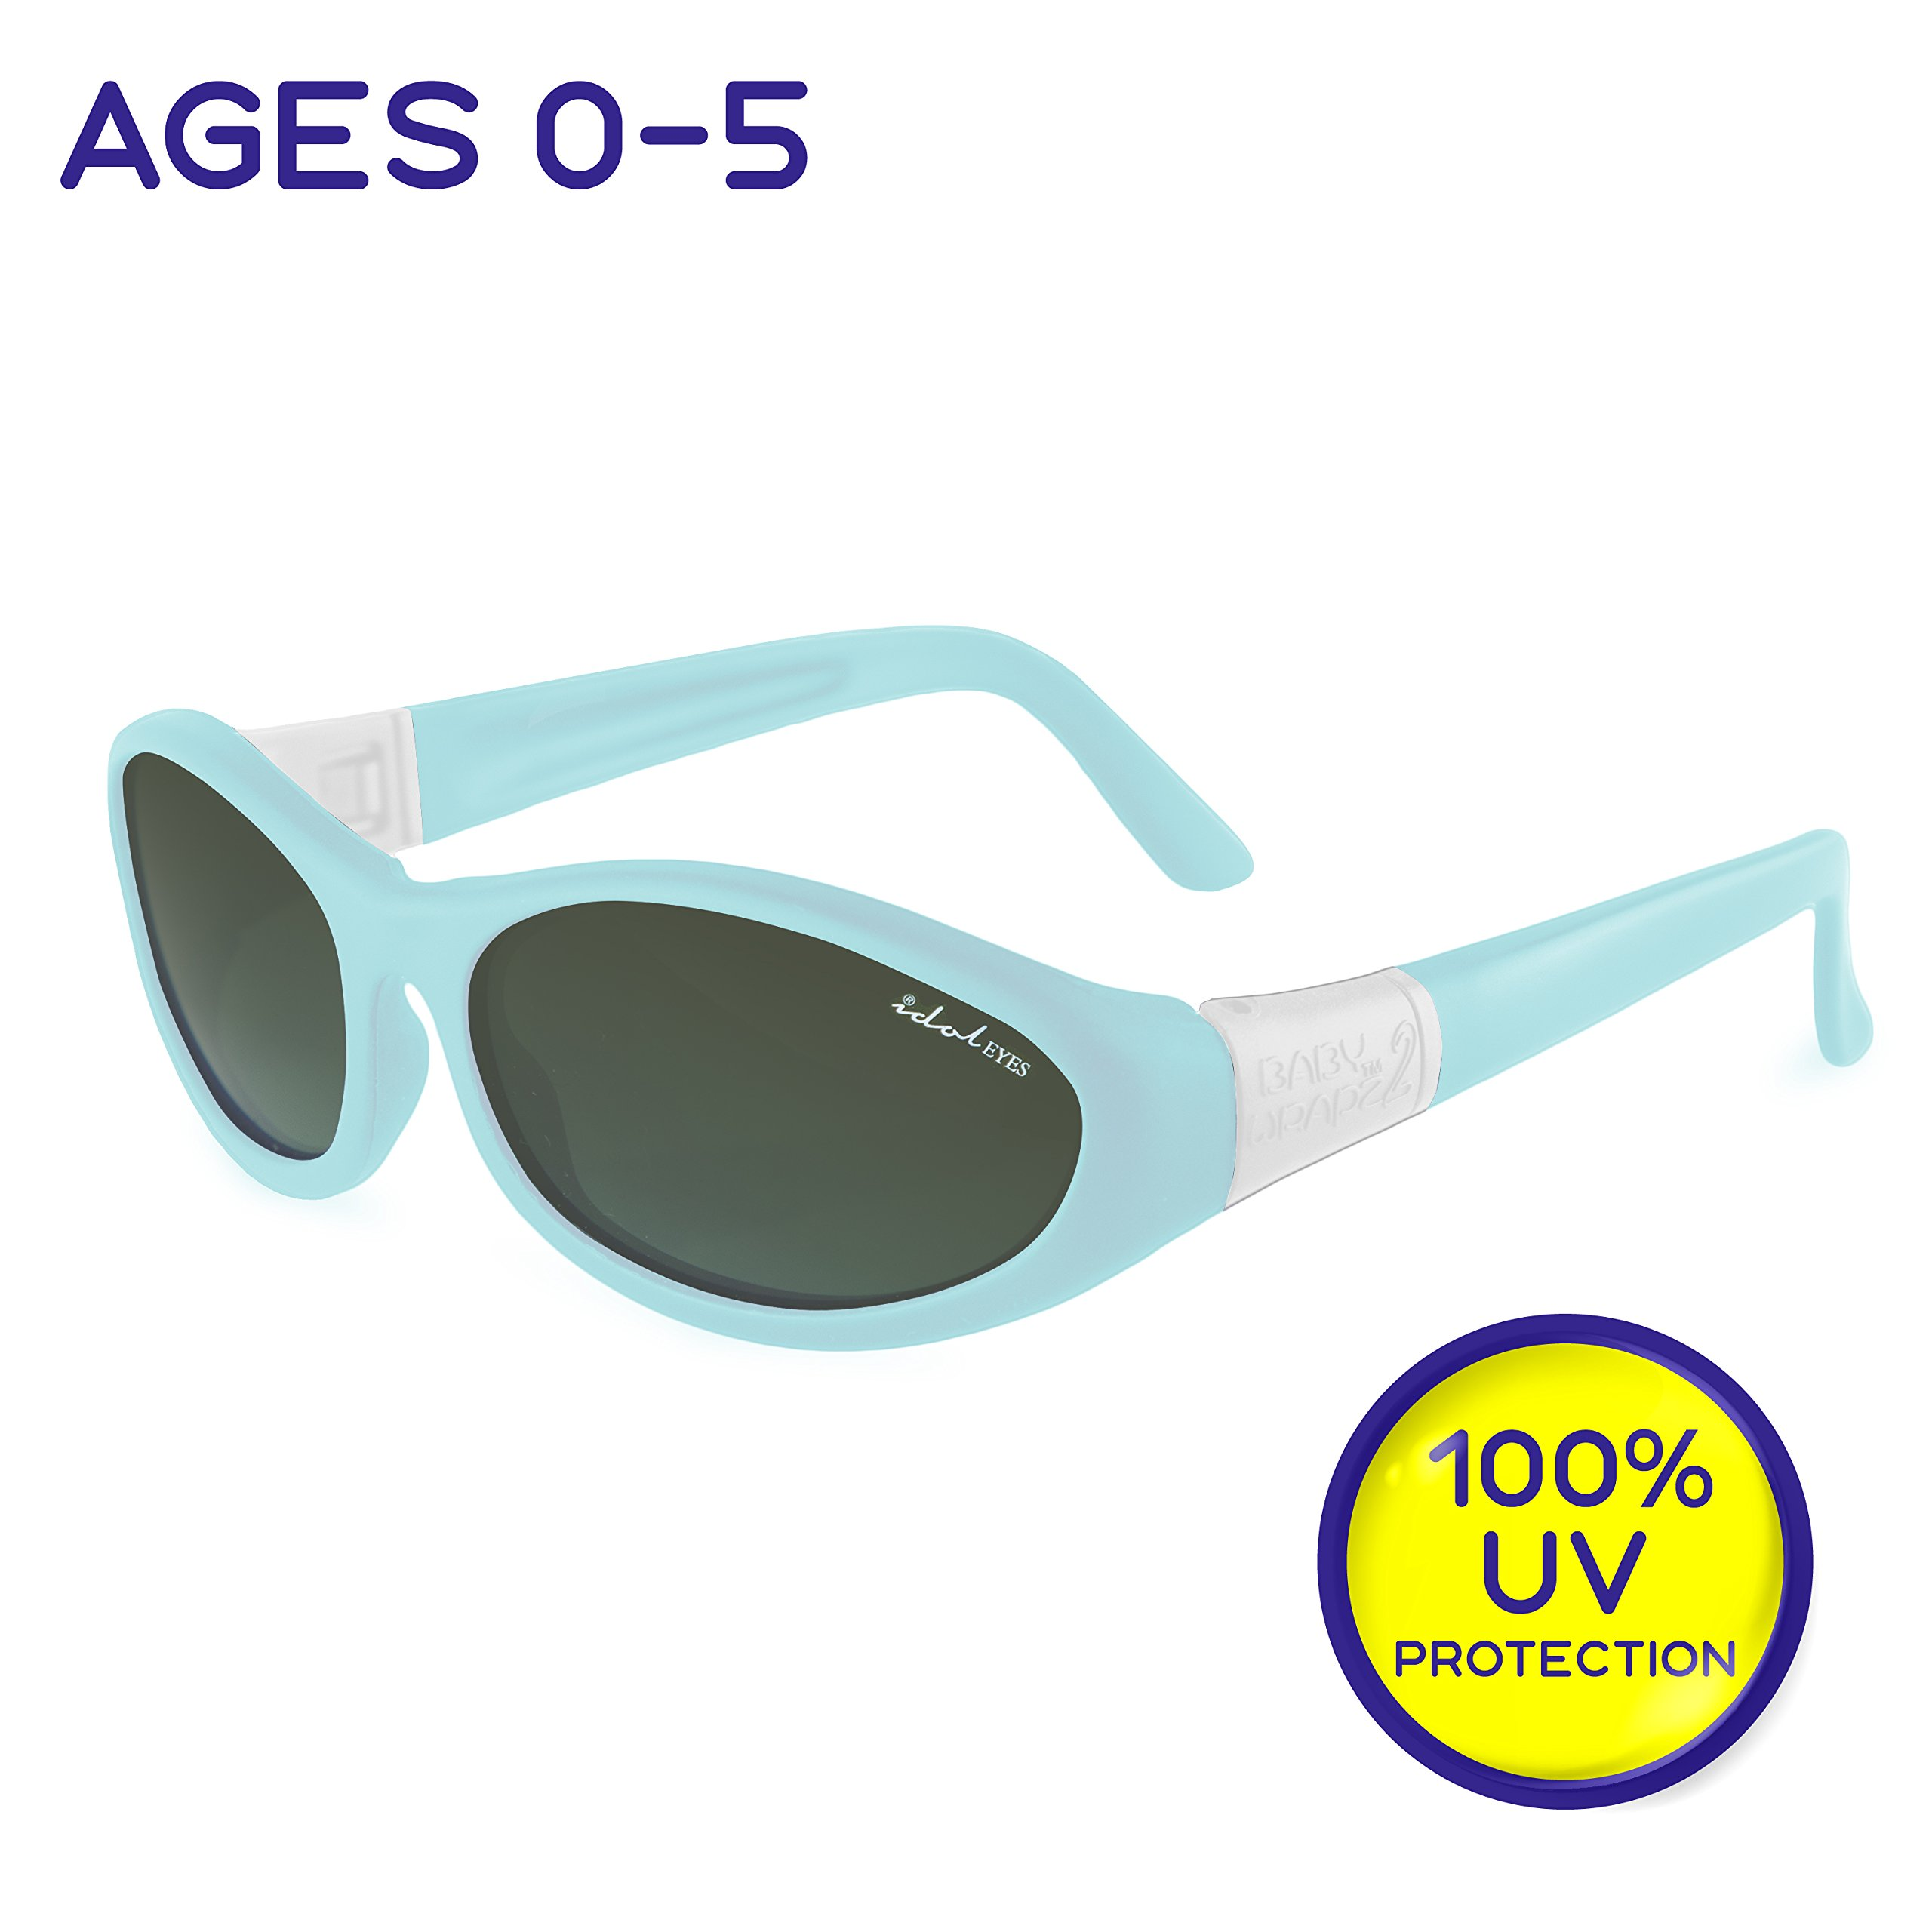 a3f2248801 Toddler and Kids Sunglasses with Strap - Baby Wrapz 2 Baby Sunglasses w  100 %